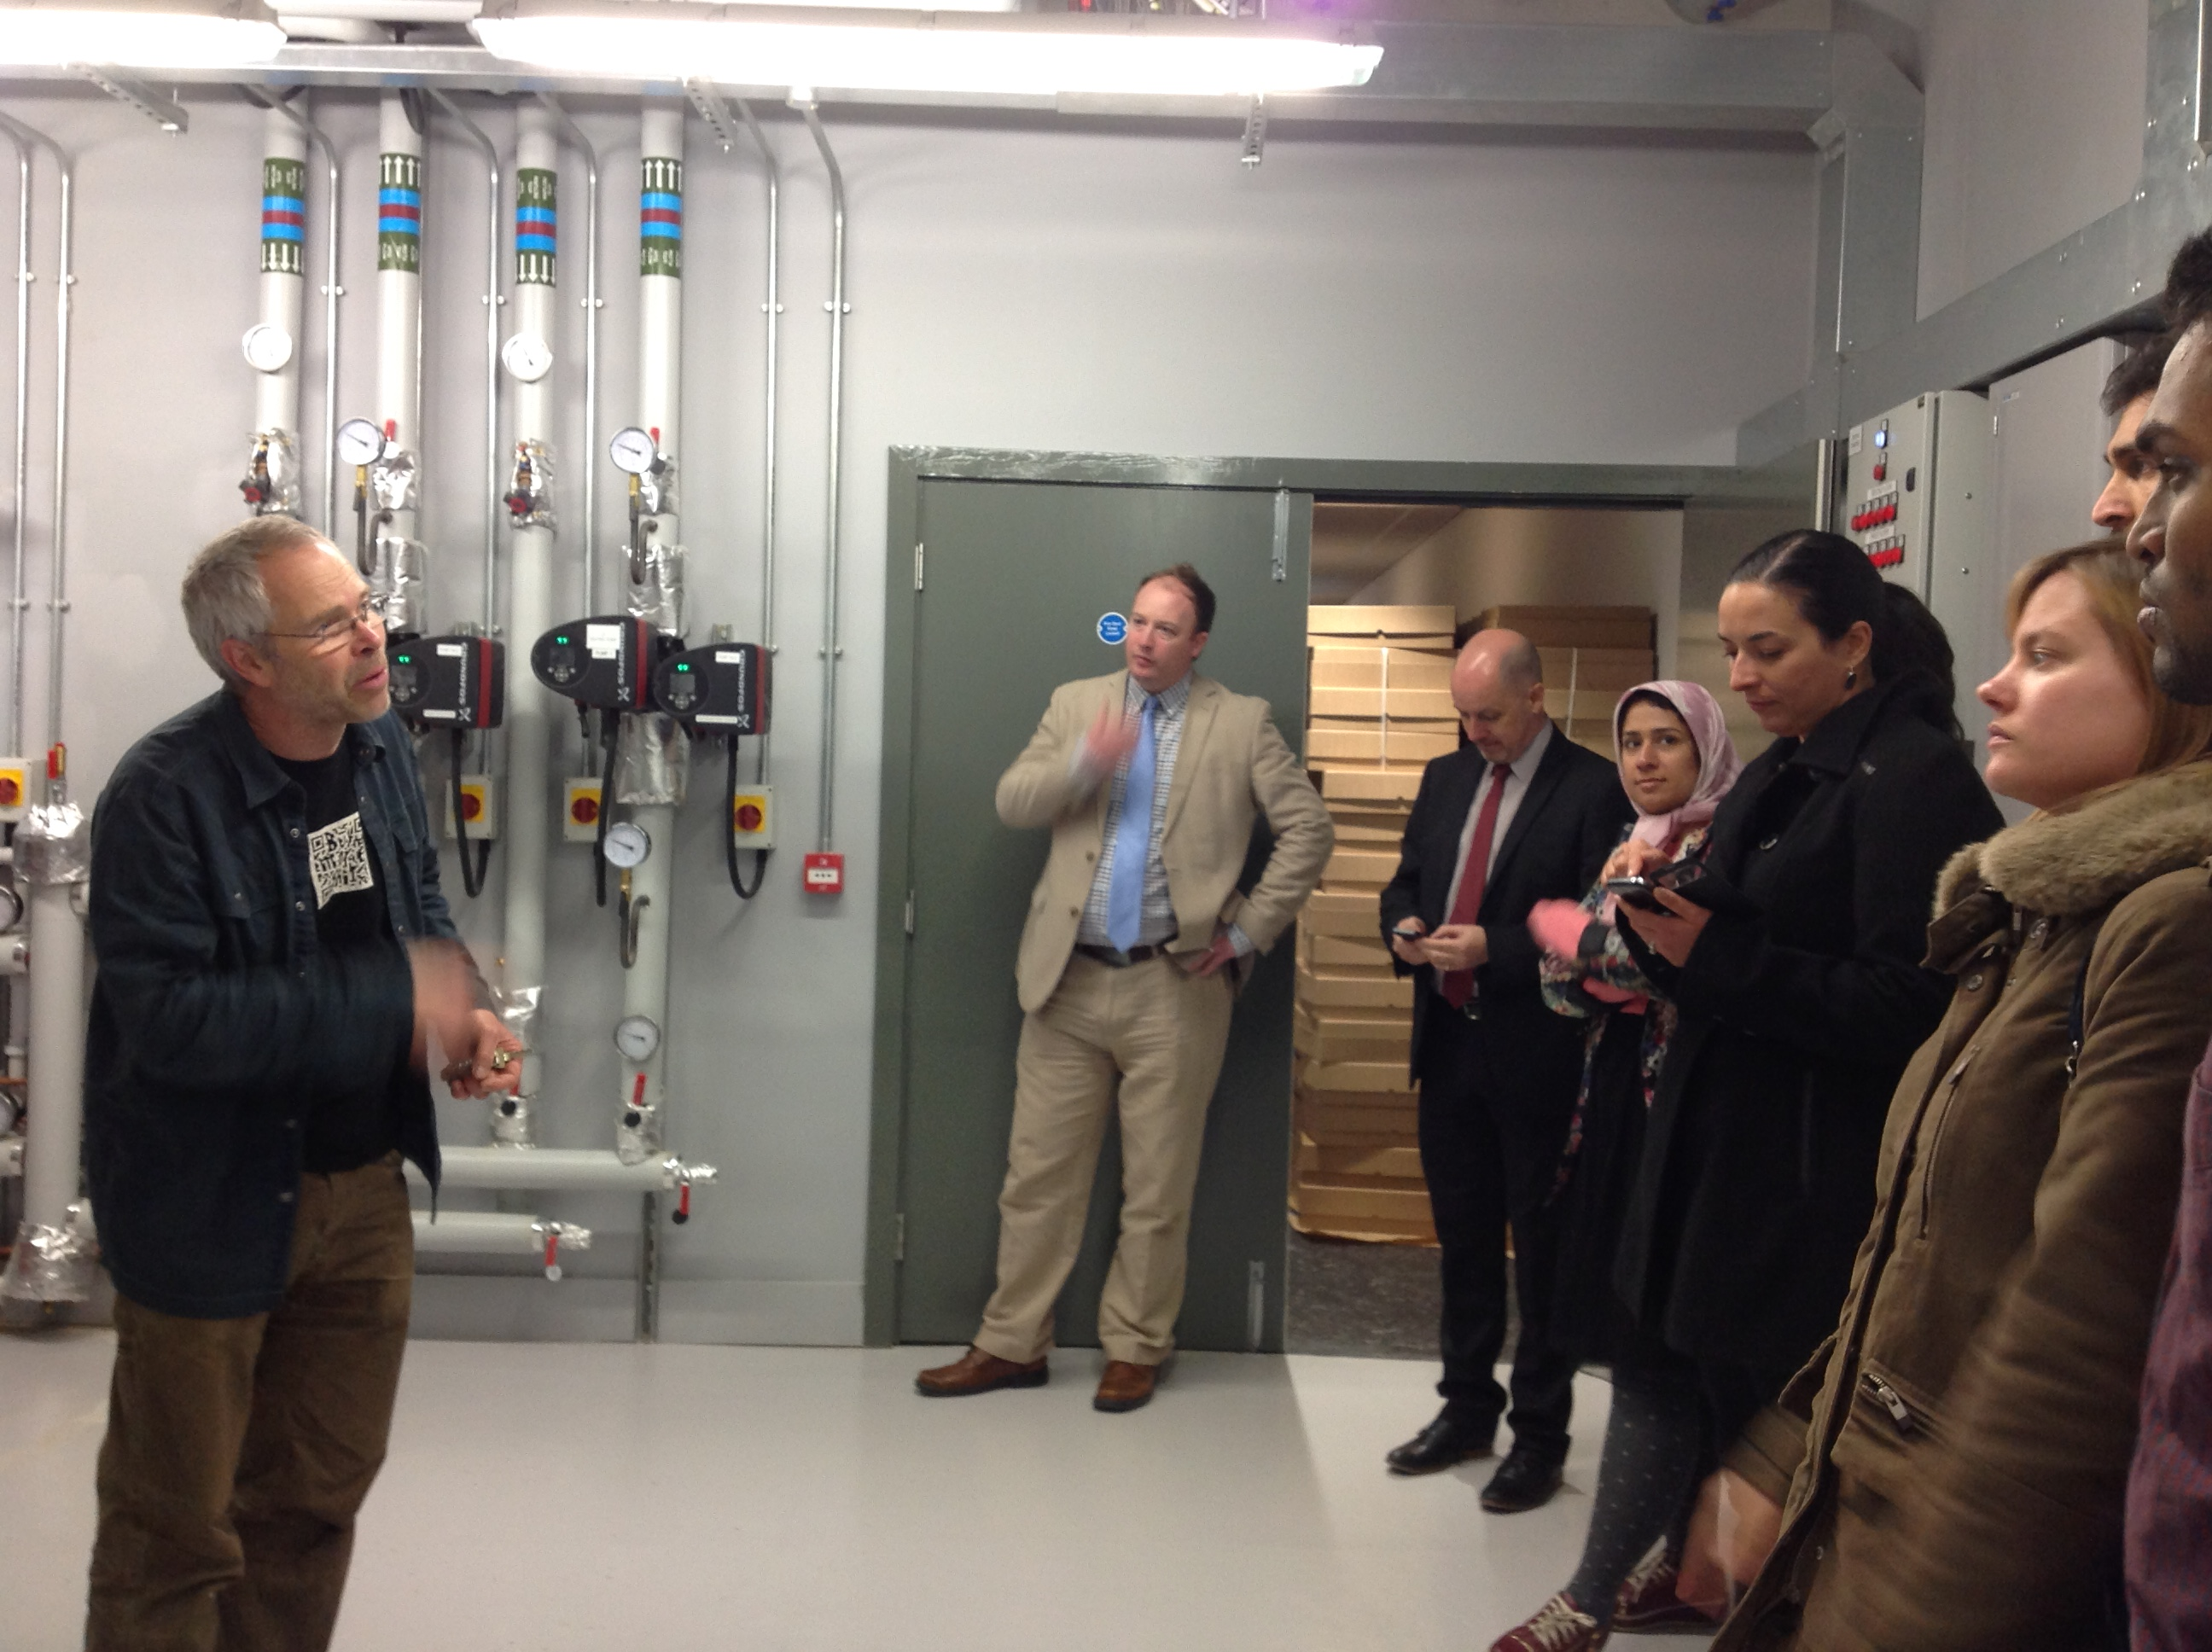 Nick Grant shows off the plant room at HARC